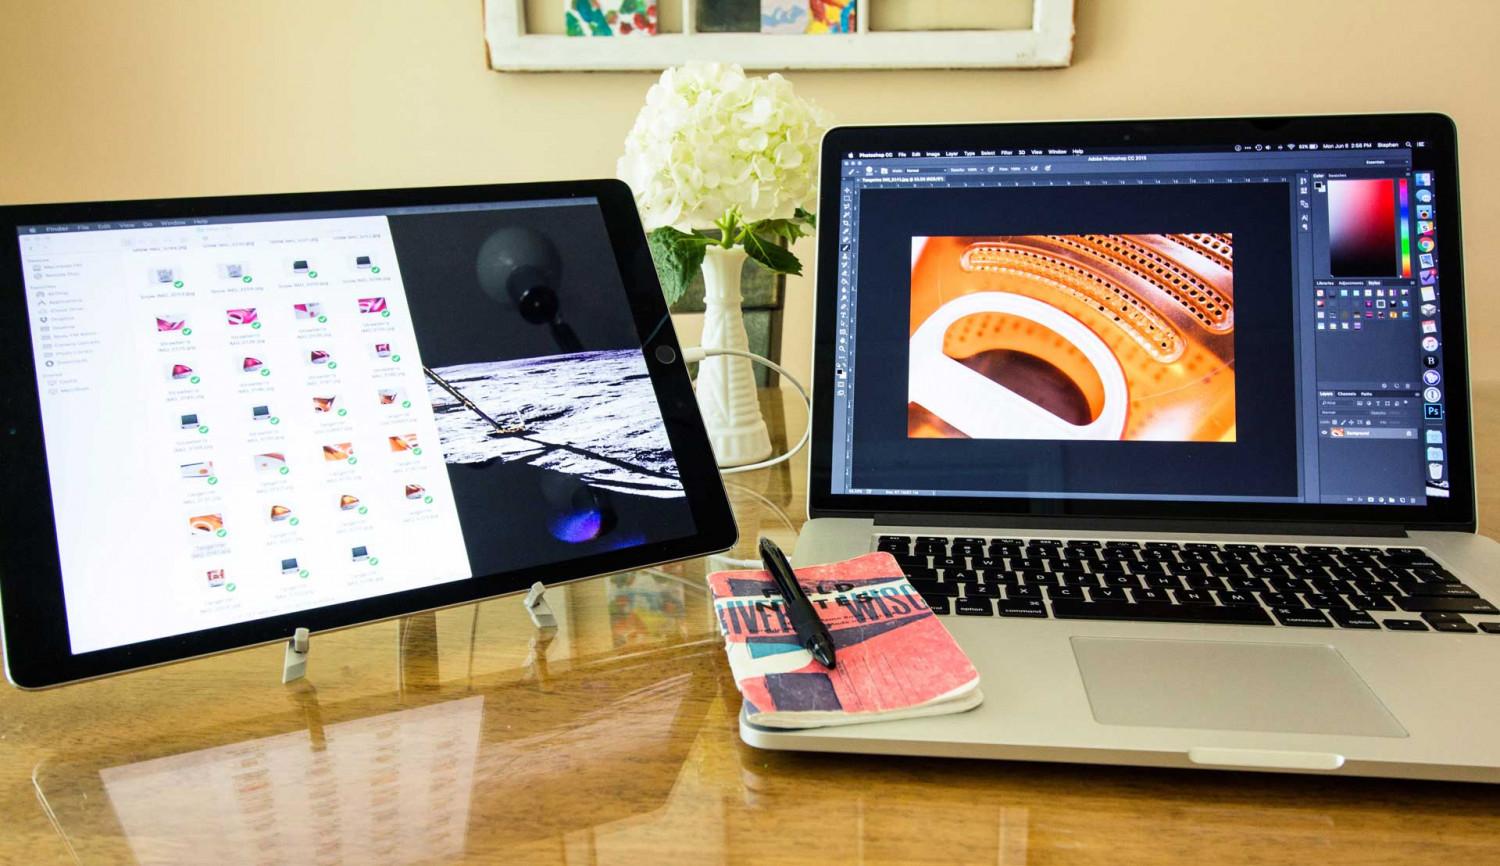 How to Use iPad as a Second Screen for Your Mac? Infographic